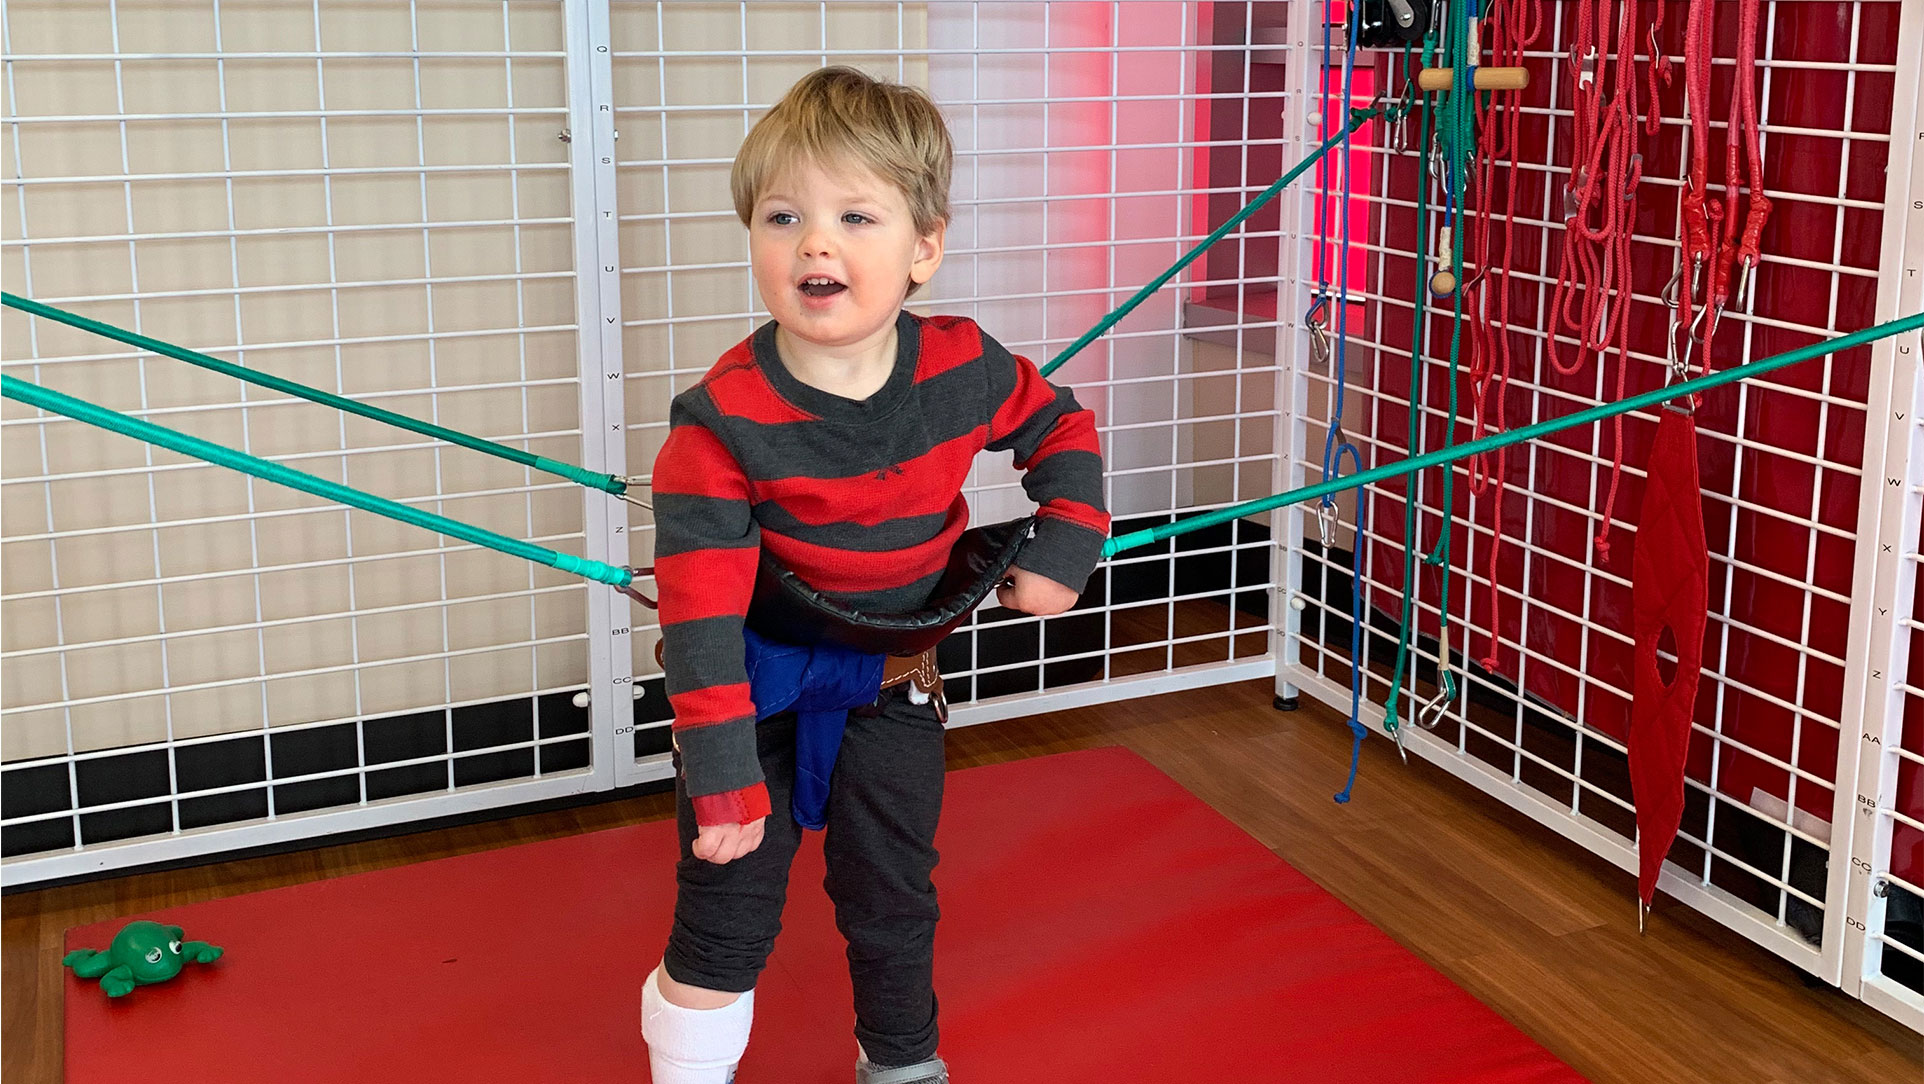 Rory at physical therapy in his gait trainer. He is wearing a dark grey and red striped shirt with dark grey pants.